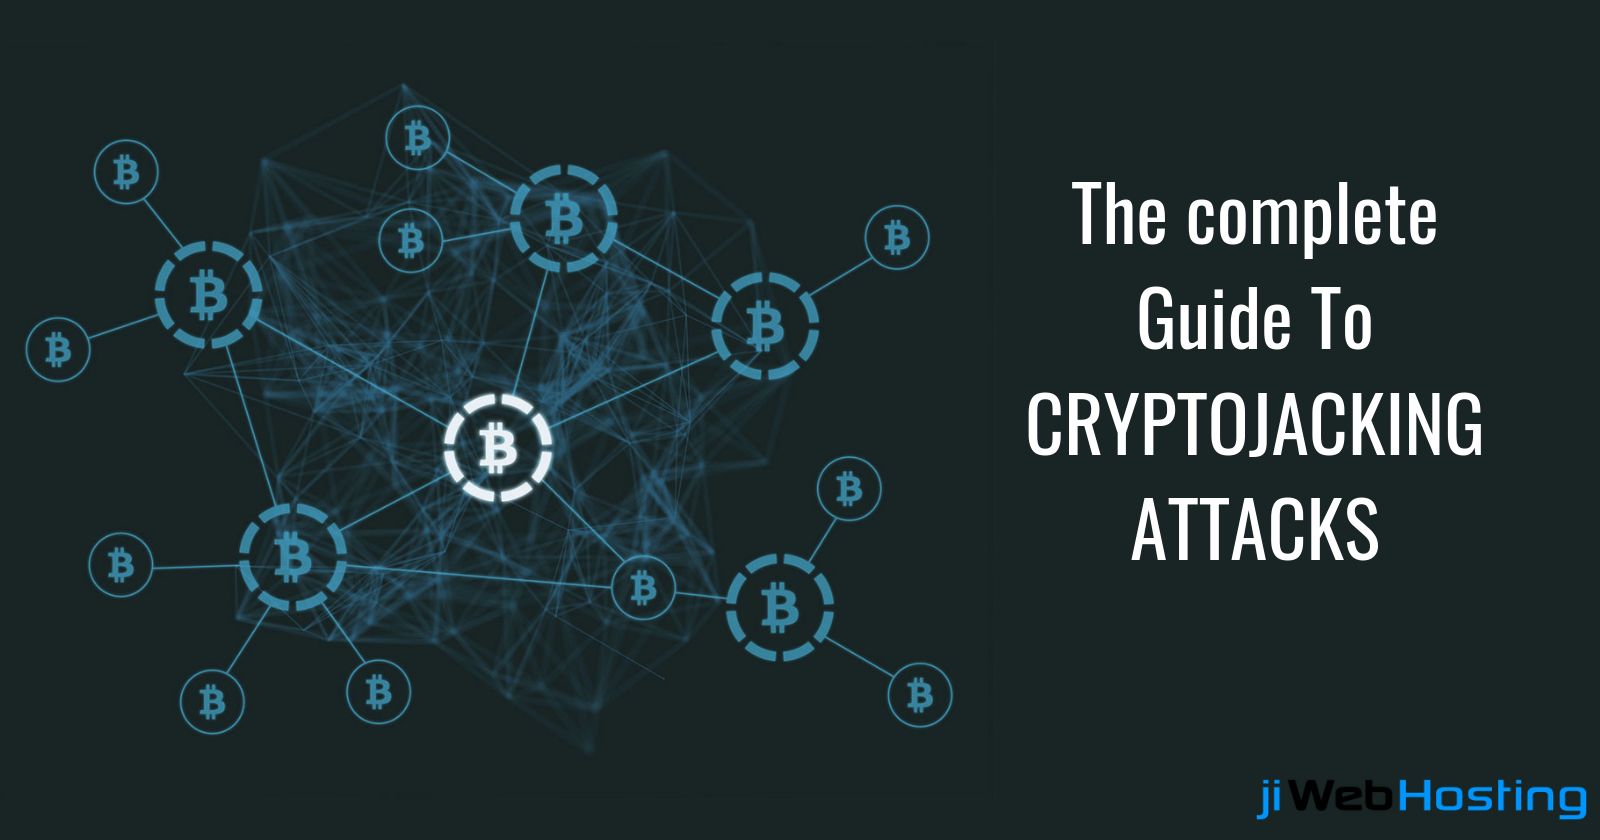 What Is Cryptojacking And How to Prevent It?